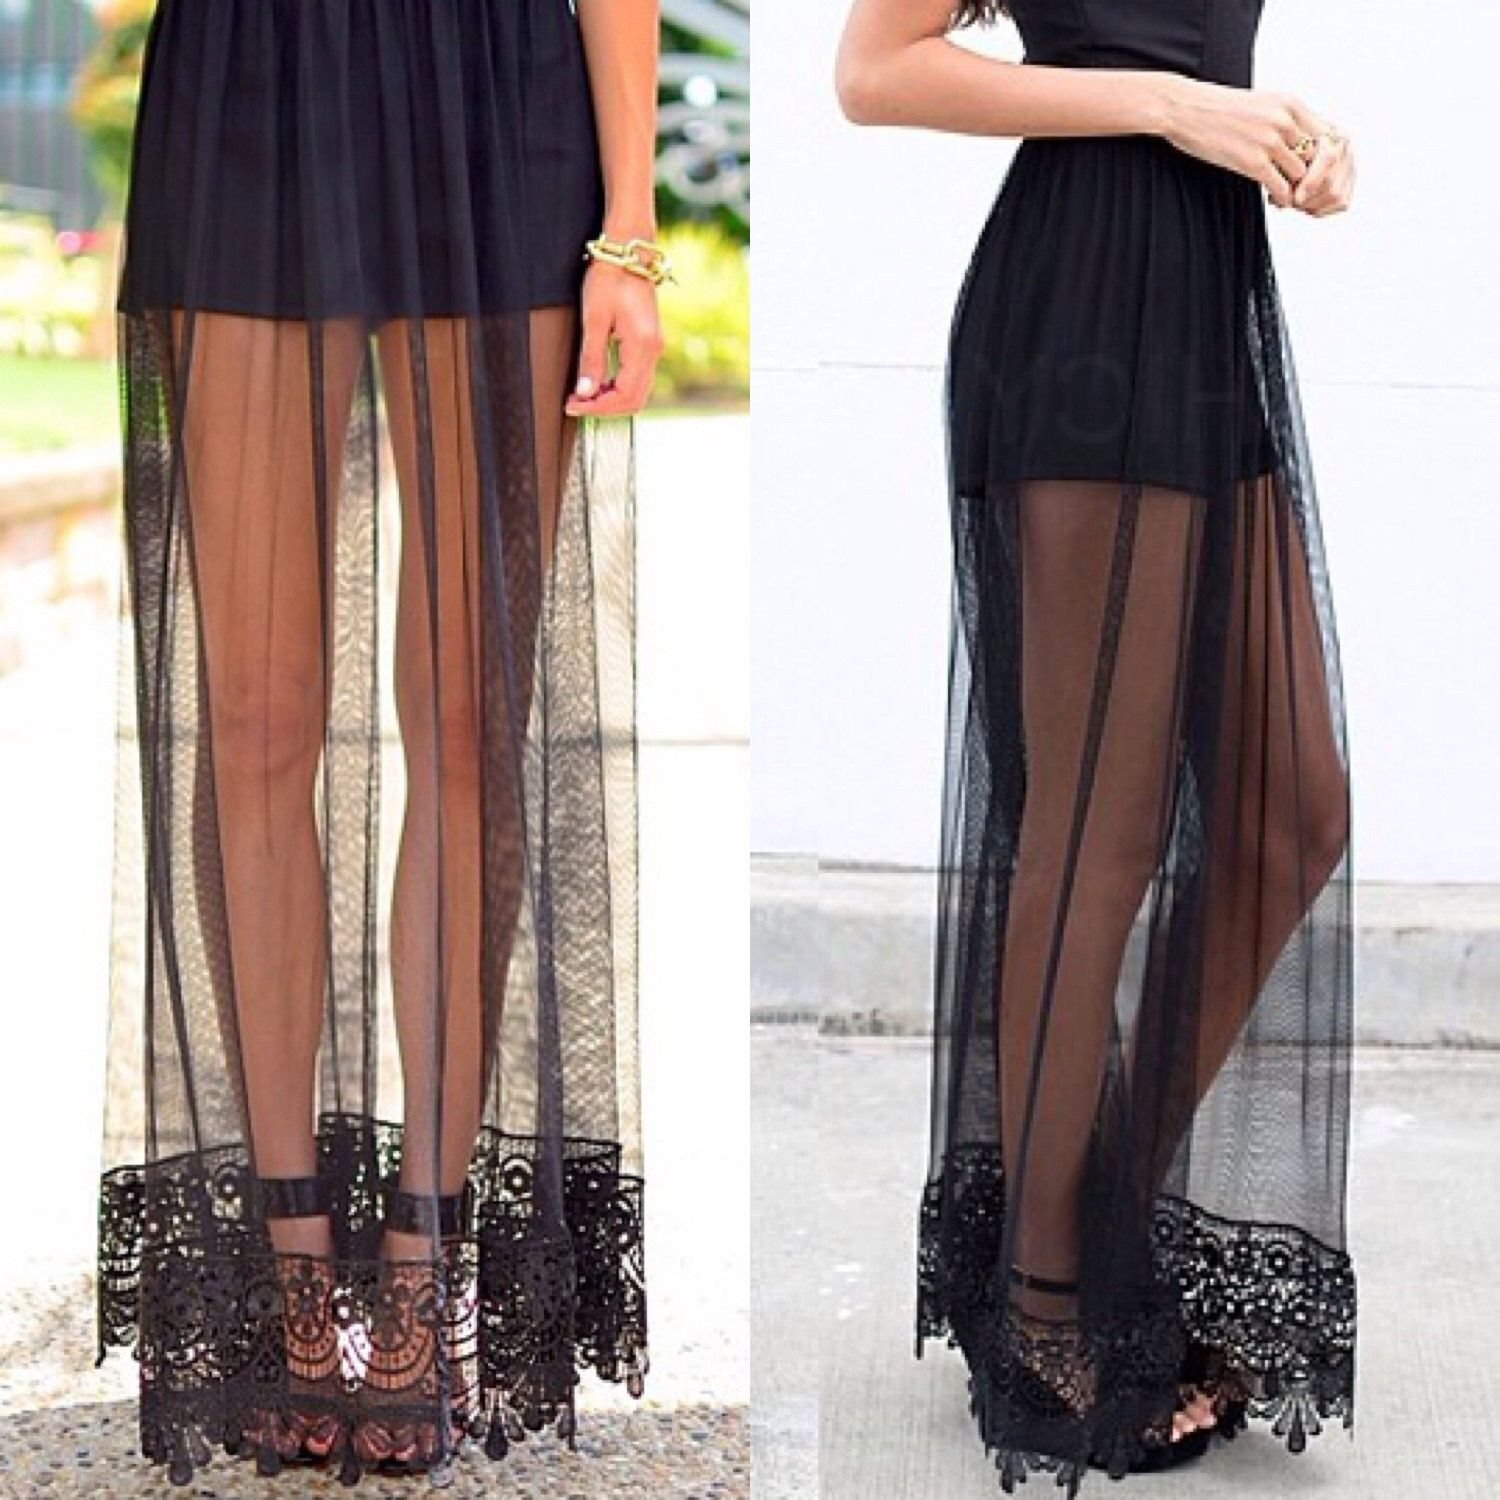 Somebody sell me her legs! I'm loving the sheerness of the maxi skirt though. So cute!!!